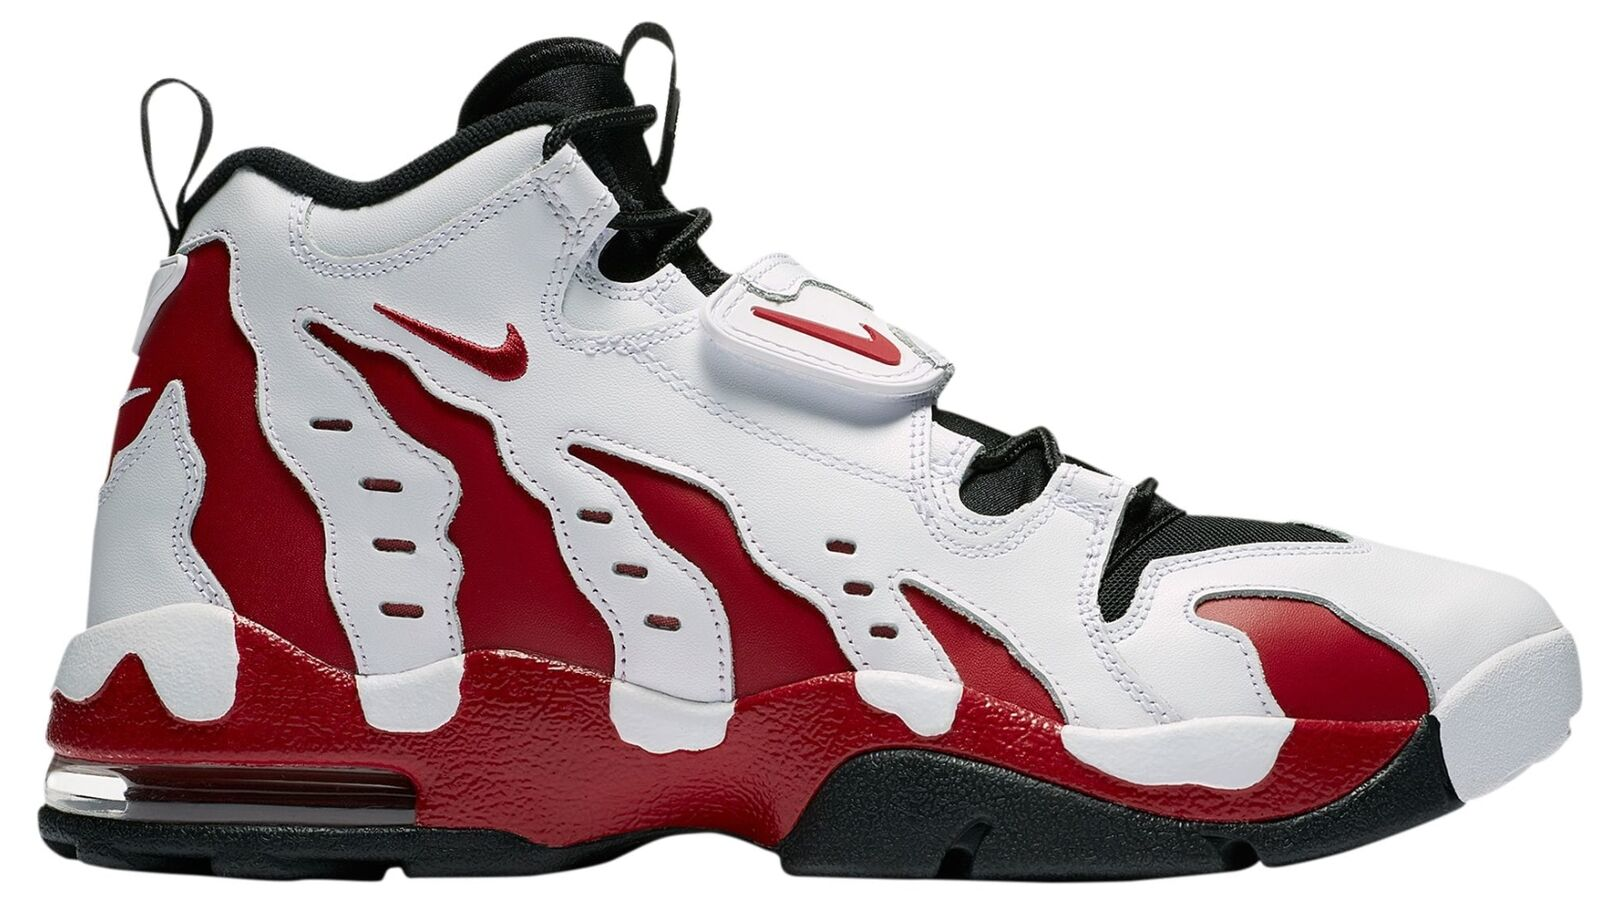 Nike Air DT Max '96 Falcons Mens 316408-161 White Red Black Deion Shoes Size 9.5